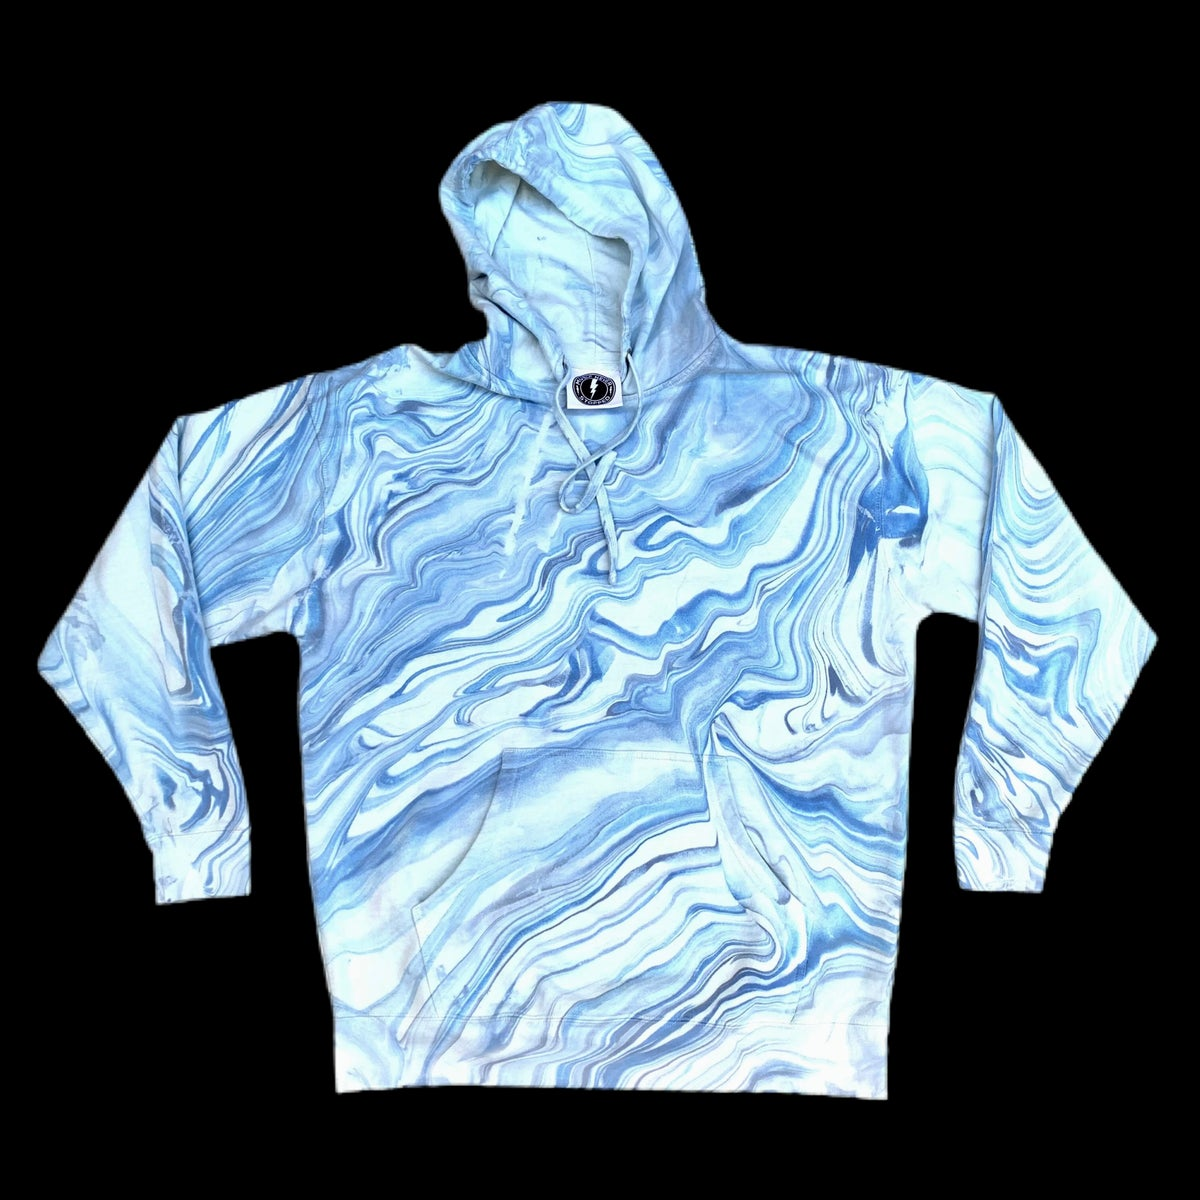 Blue Dream Hand Marble Dyed Unisex Hooded Sweatshirt!